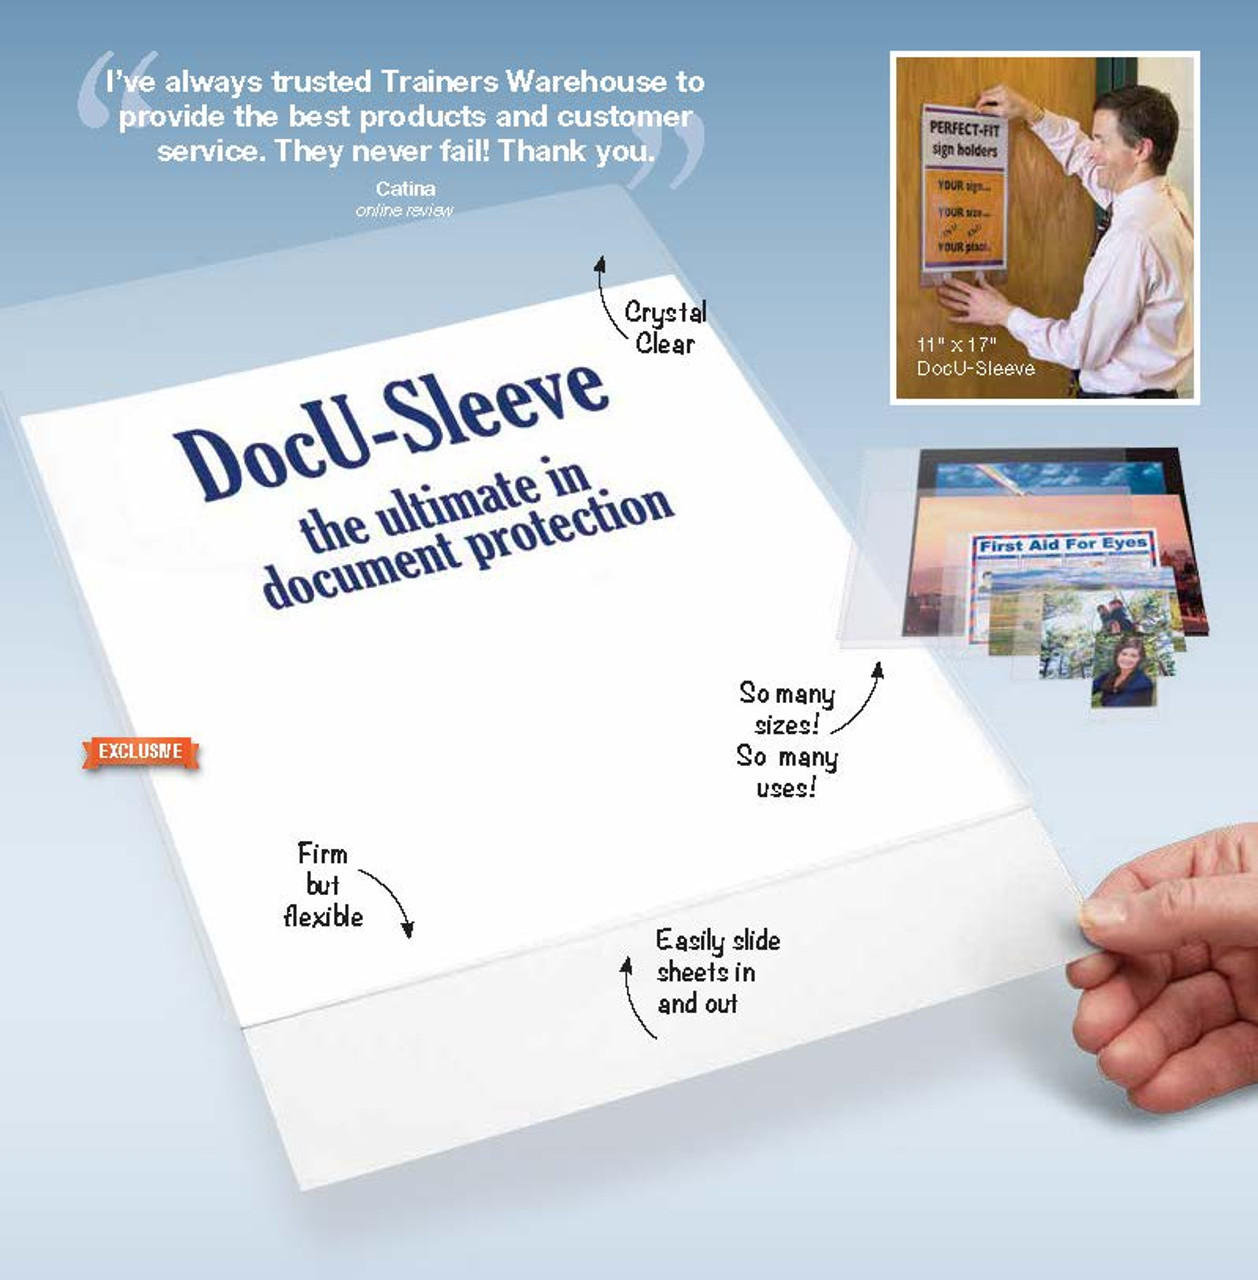 DocU-Sleeve - features